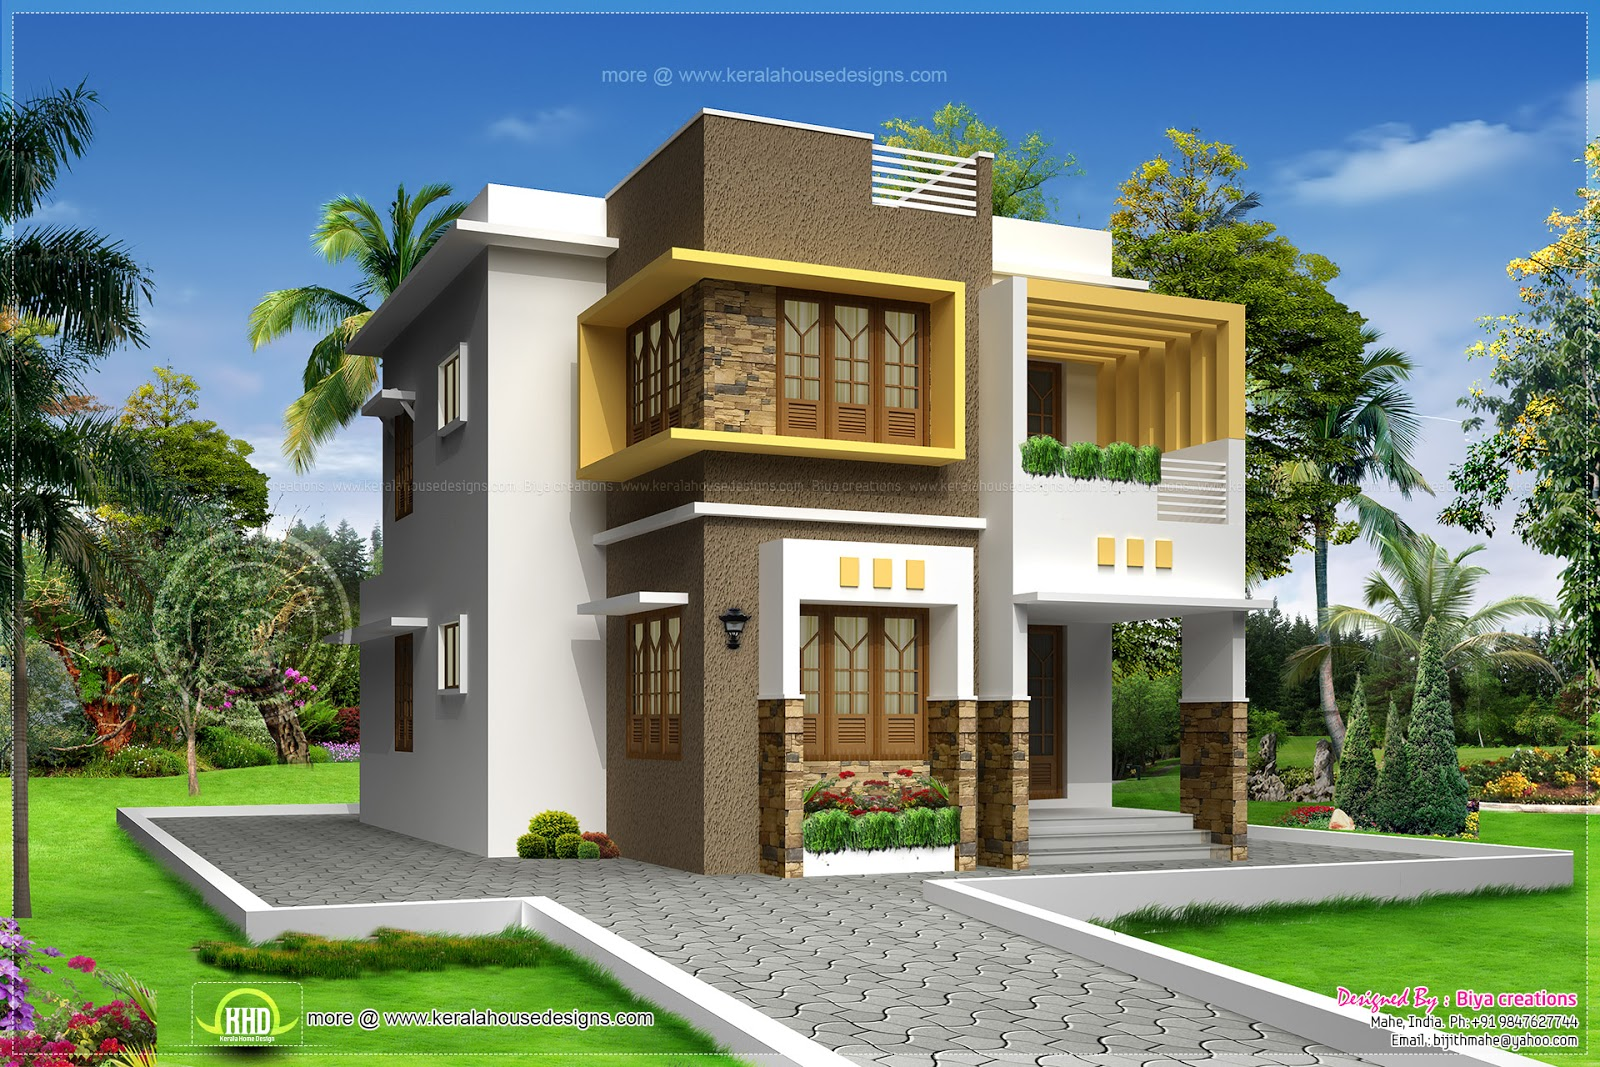 Kerala home design siddu buzz 1500 sq ft house plan indian design